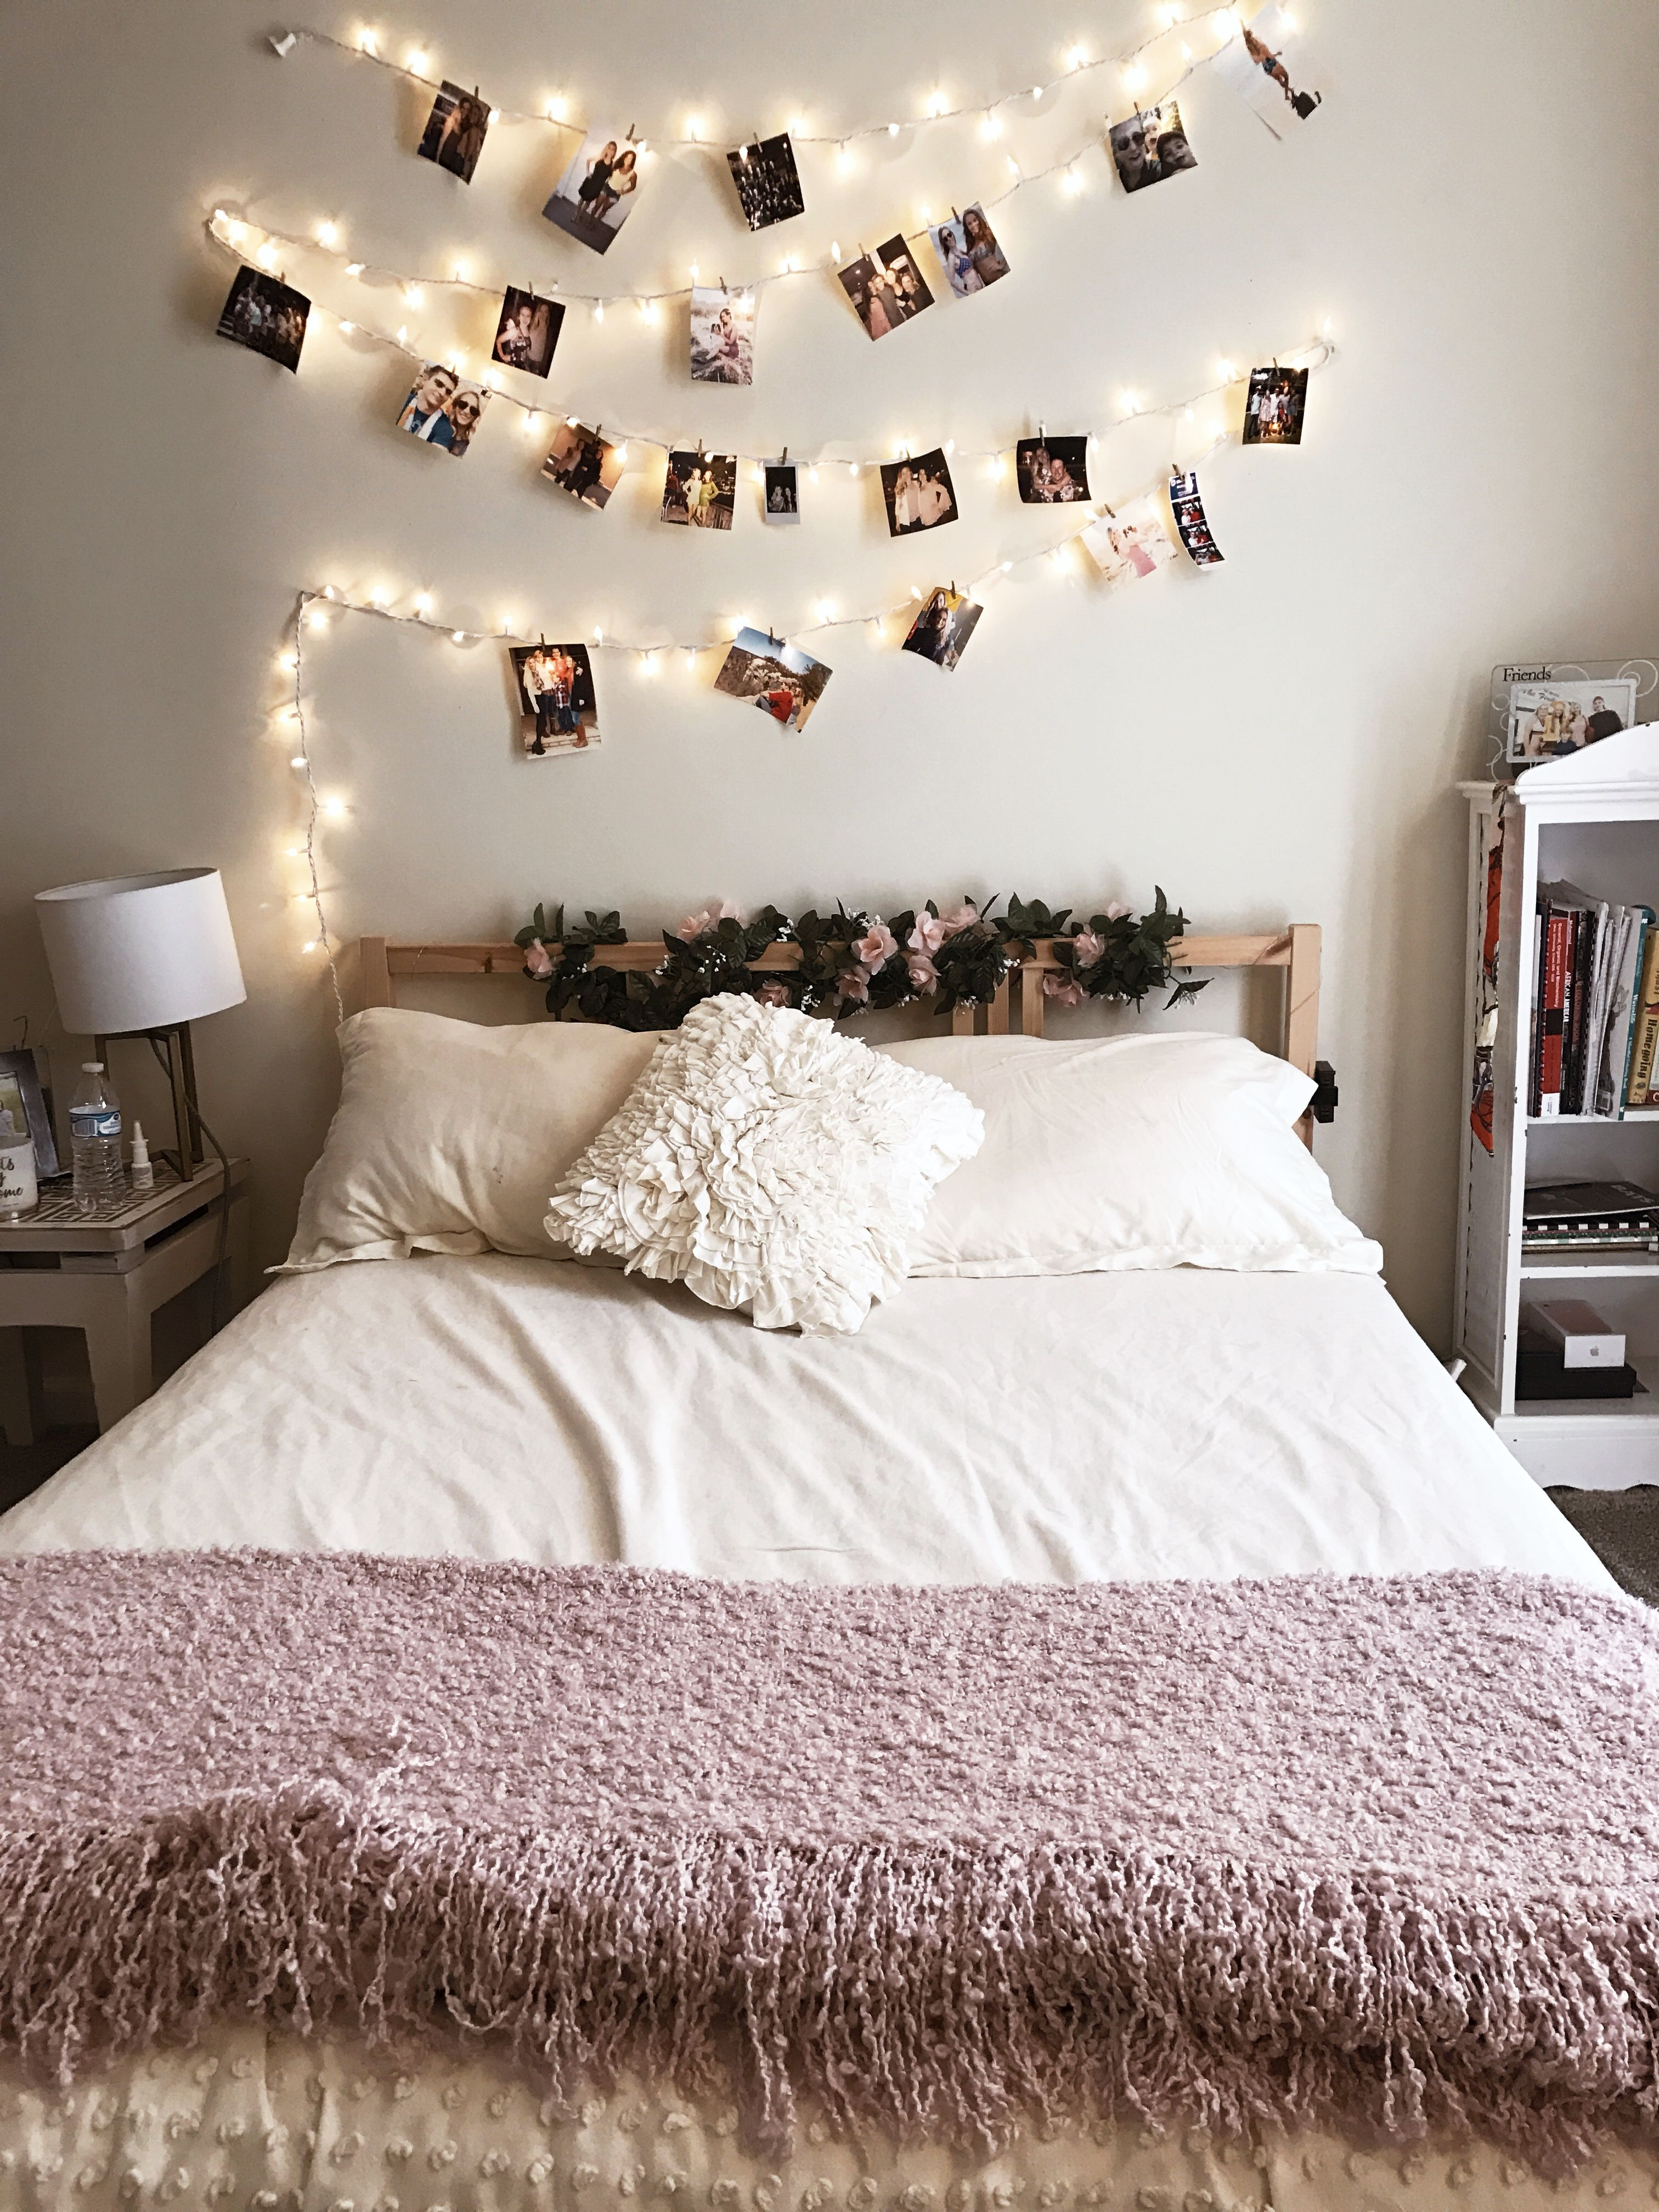 Cute Lights And Bedroom Bedding Urban Outfitters Decorative Pillow And Lamp Target Be Urban Outfitters Bedroom Cute Bedroom Decor Bedroom Decor For Couples